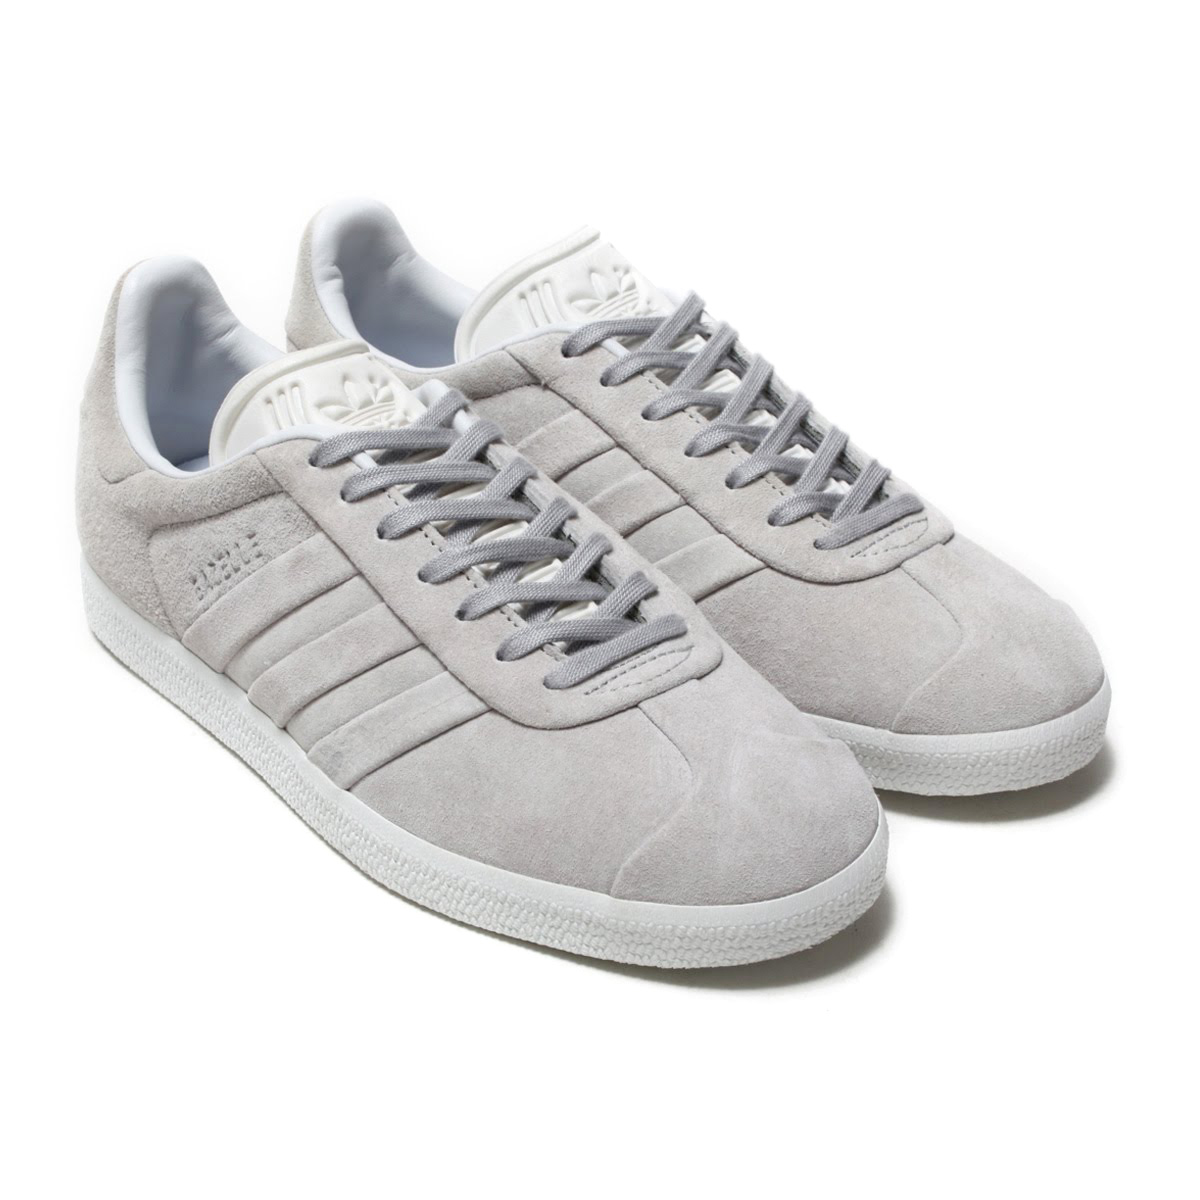 adidas Originals GAZELLE STITCH AND TURN turn W Adidas originals gazelle stitch and turn TURN W Gris TWO F17 Gris TWO F17 running Blanc 18SS I 4a6dbc